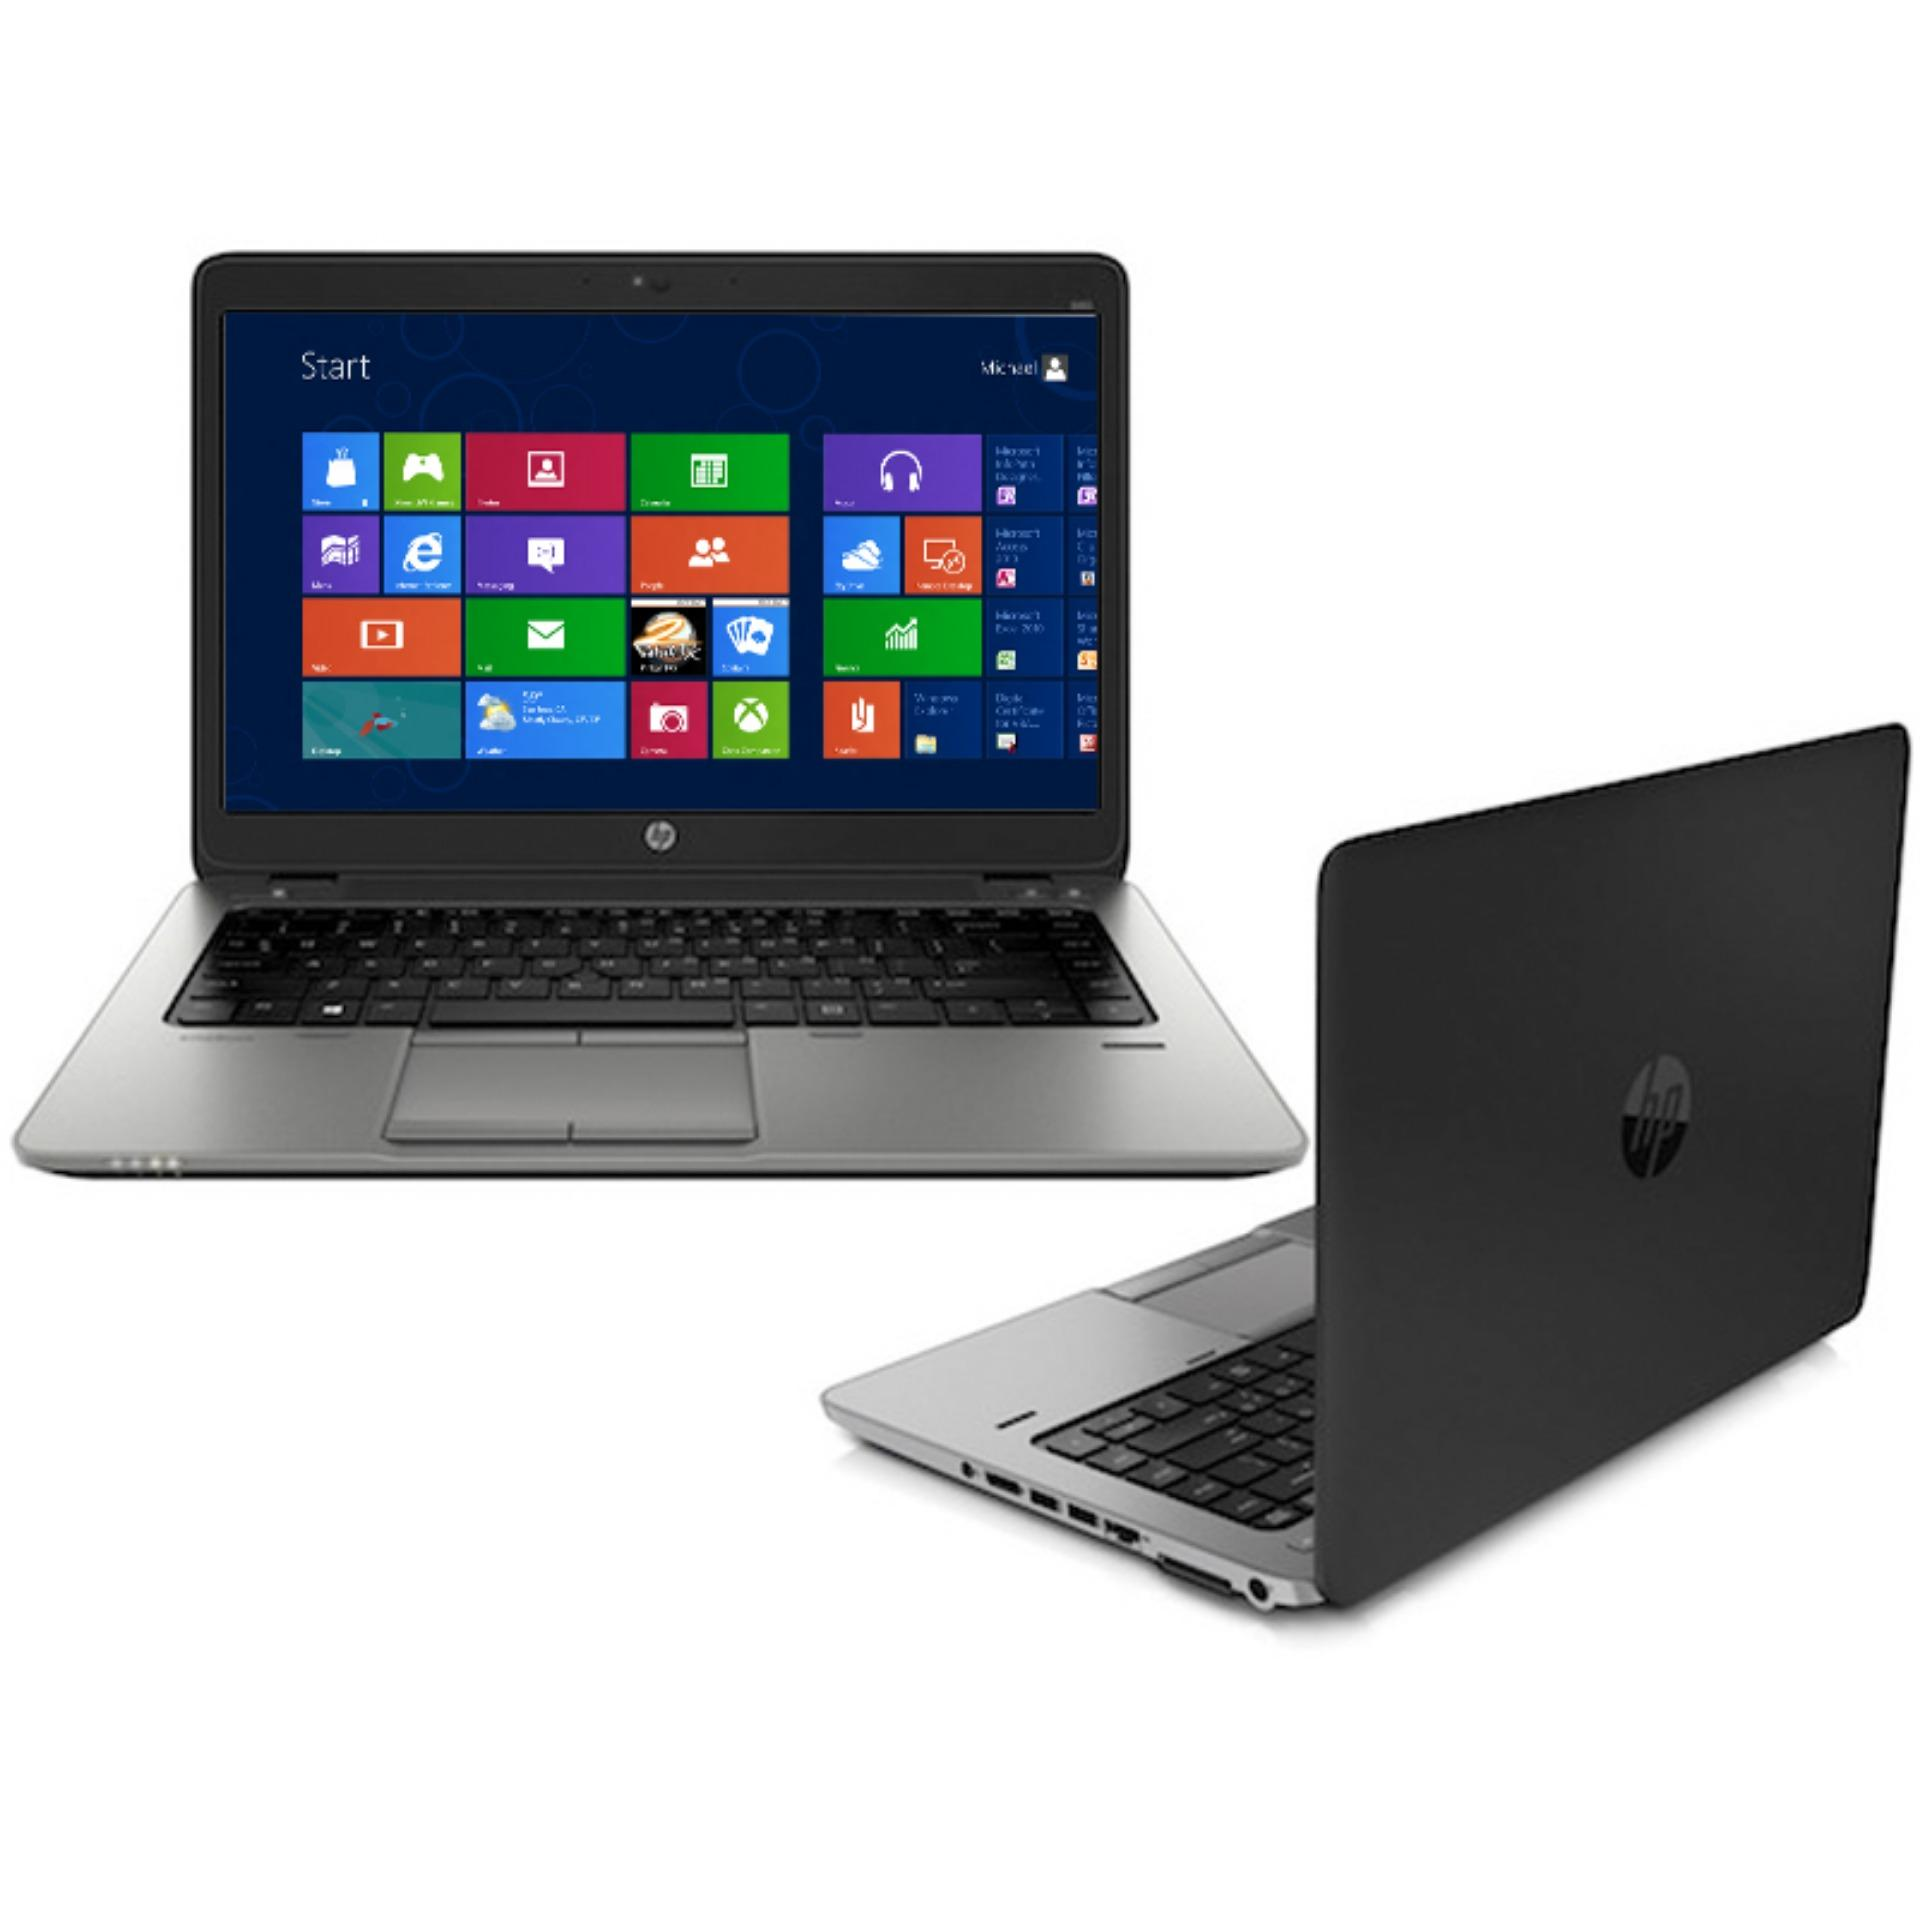 Laptop HP Elitebook 840 G1 i5/8/500 - Laptopxachtayshop